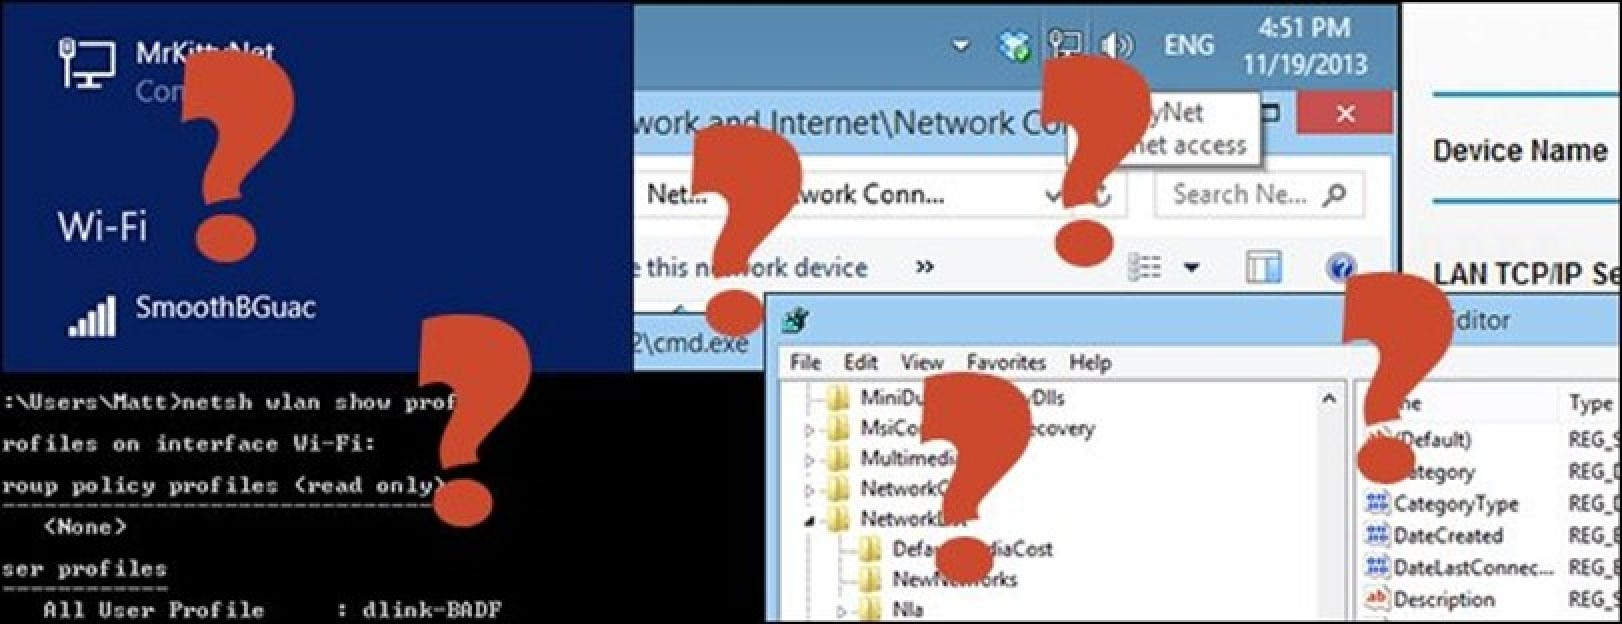 how to transfer pictures from old iphone to new iphone how to forget a wired or wireless network in windows 8 1 2023